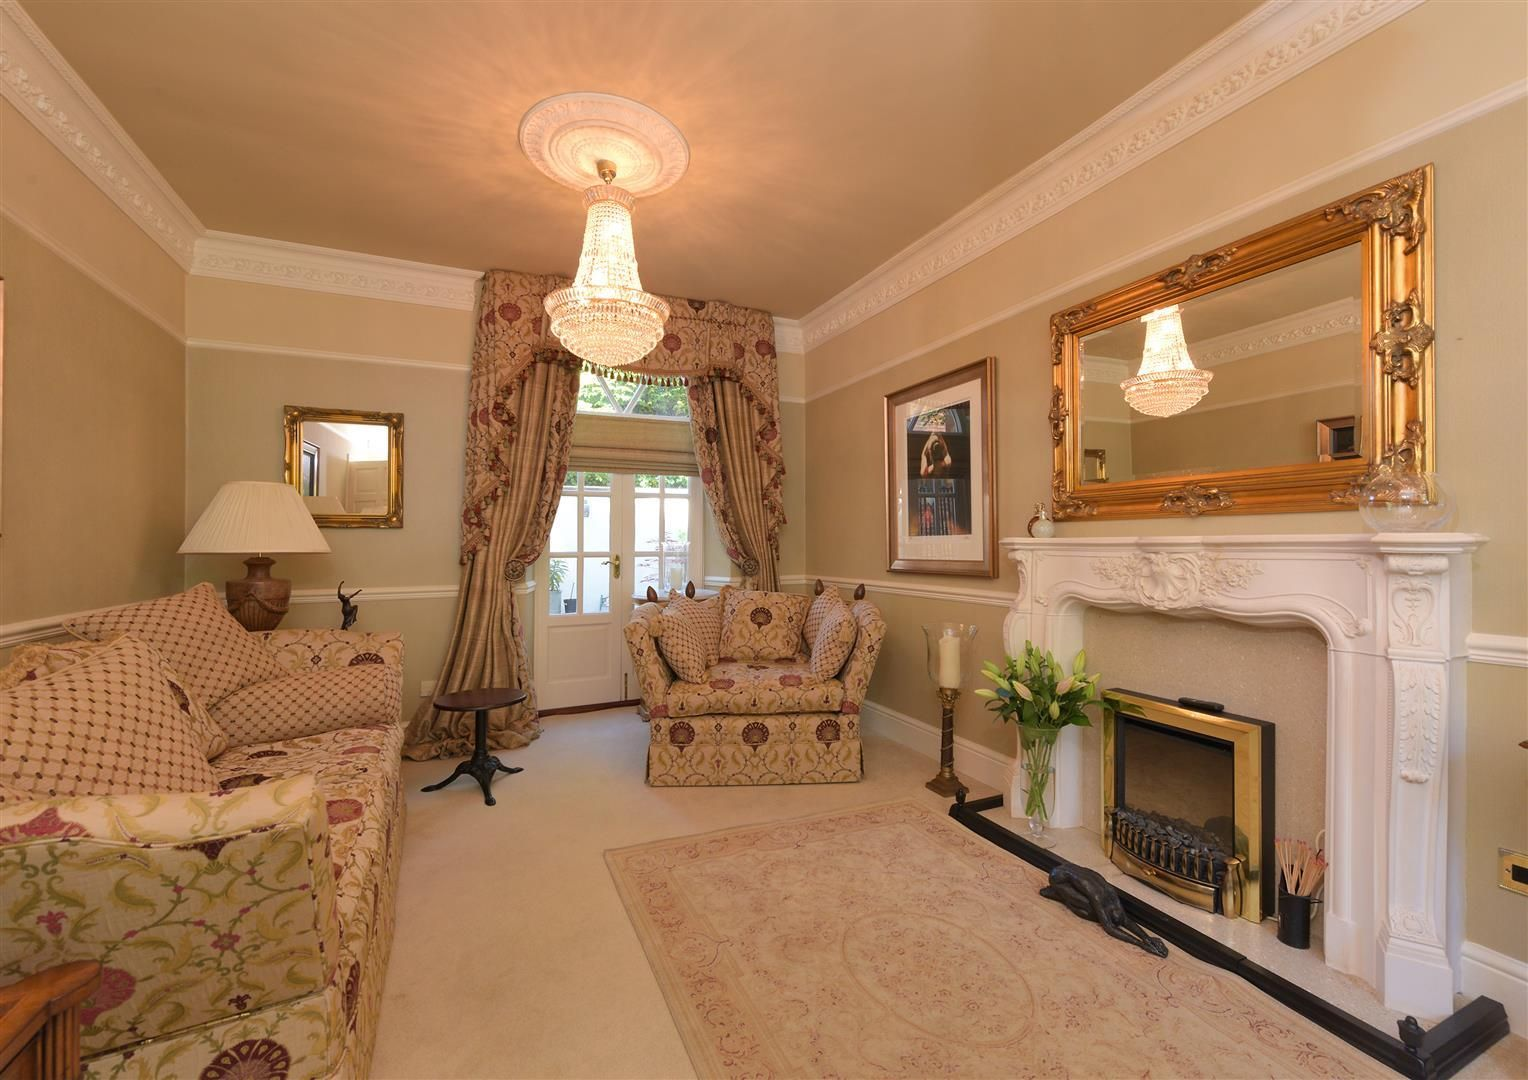 3 bed house for sale in Hagley 5